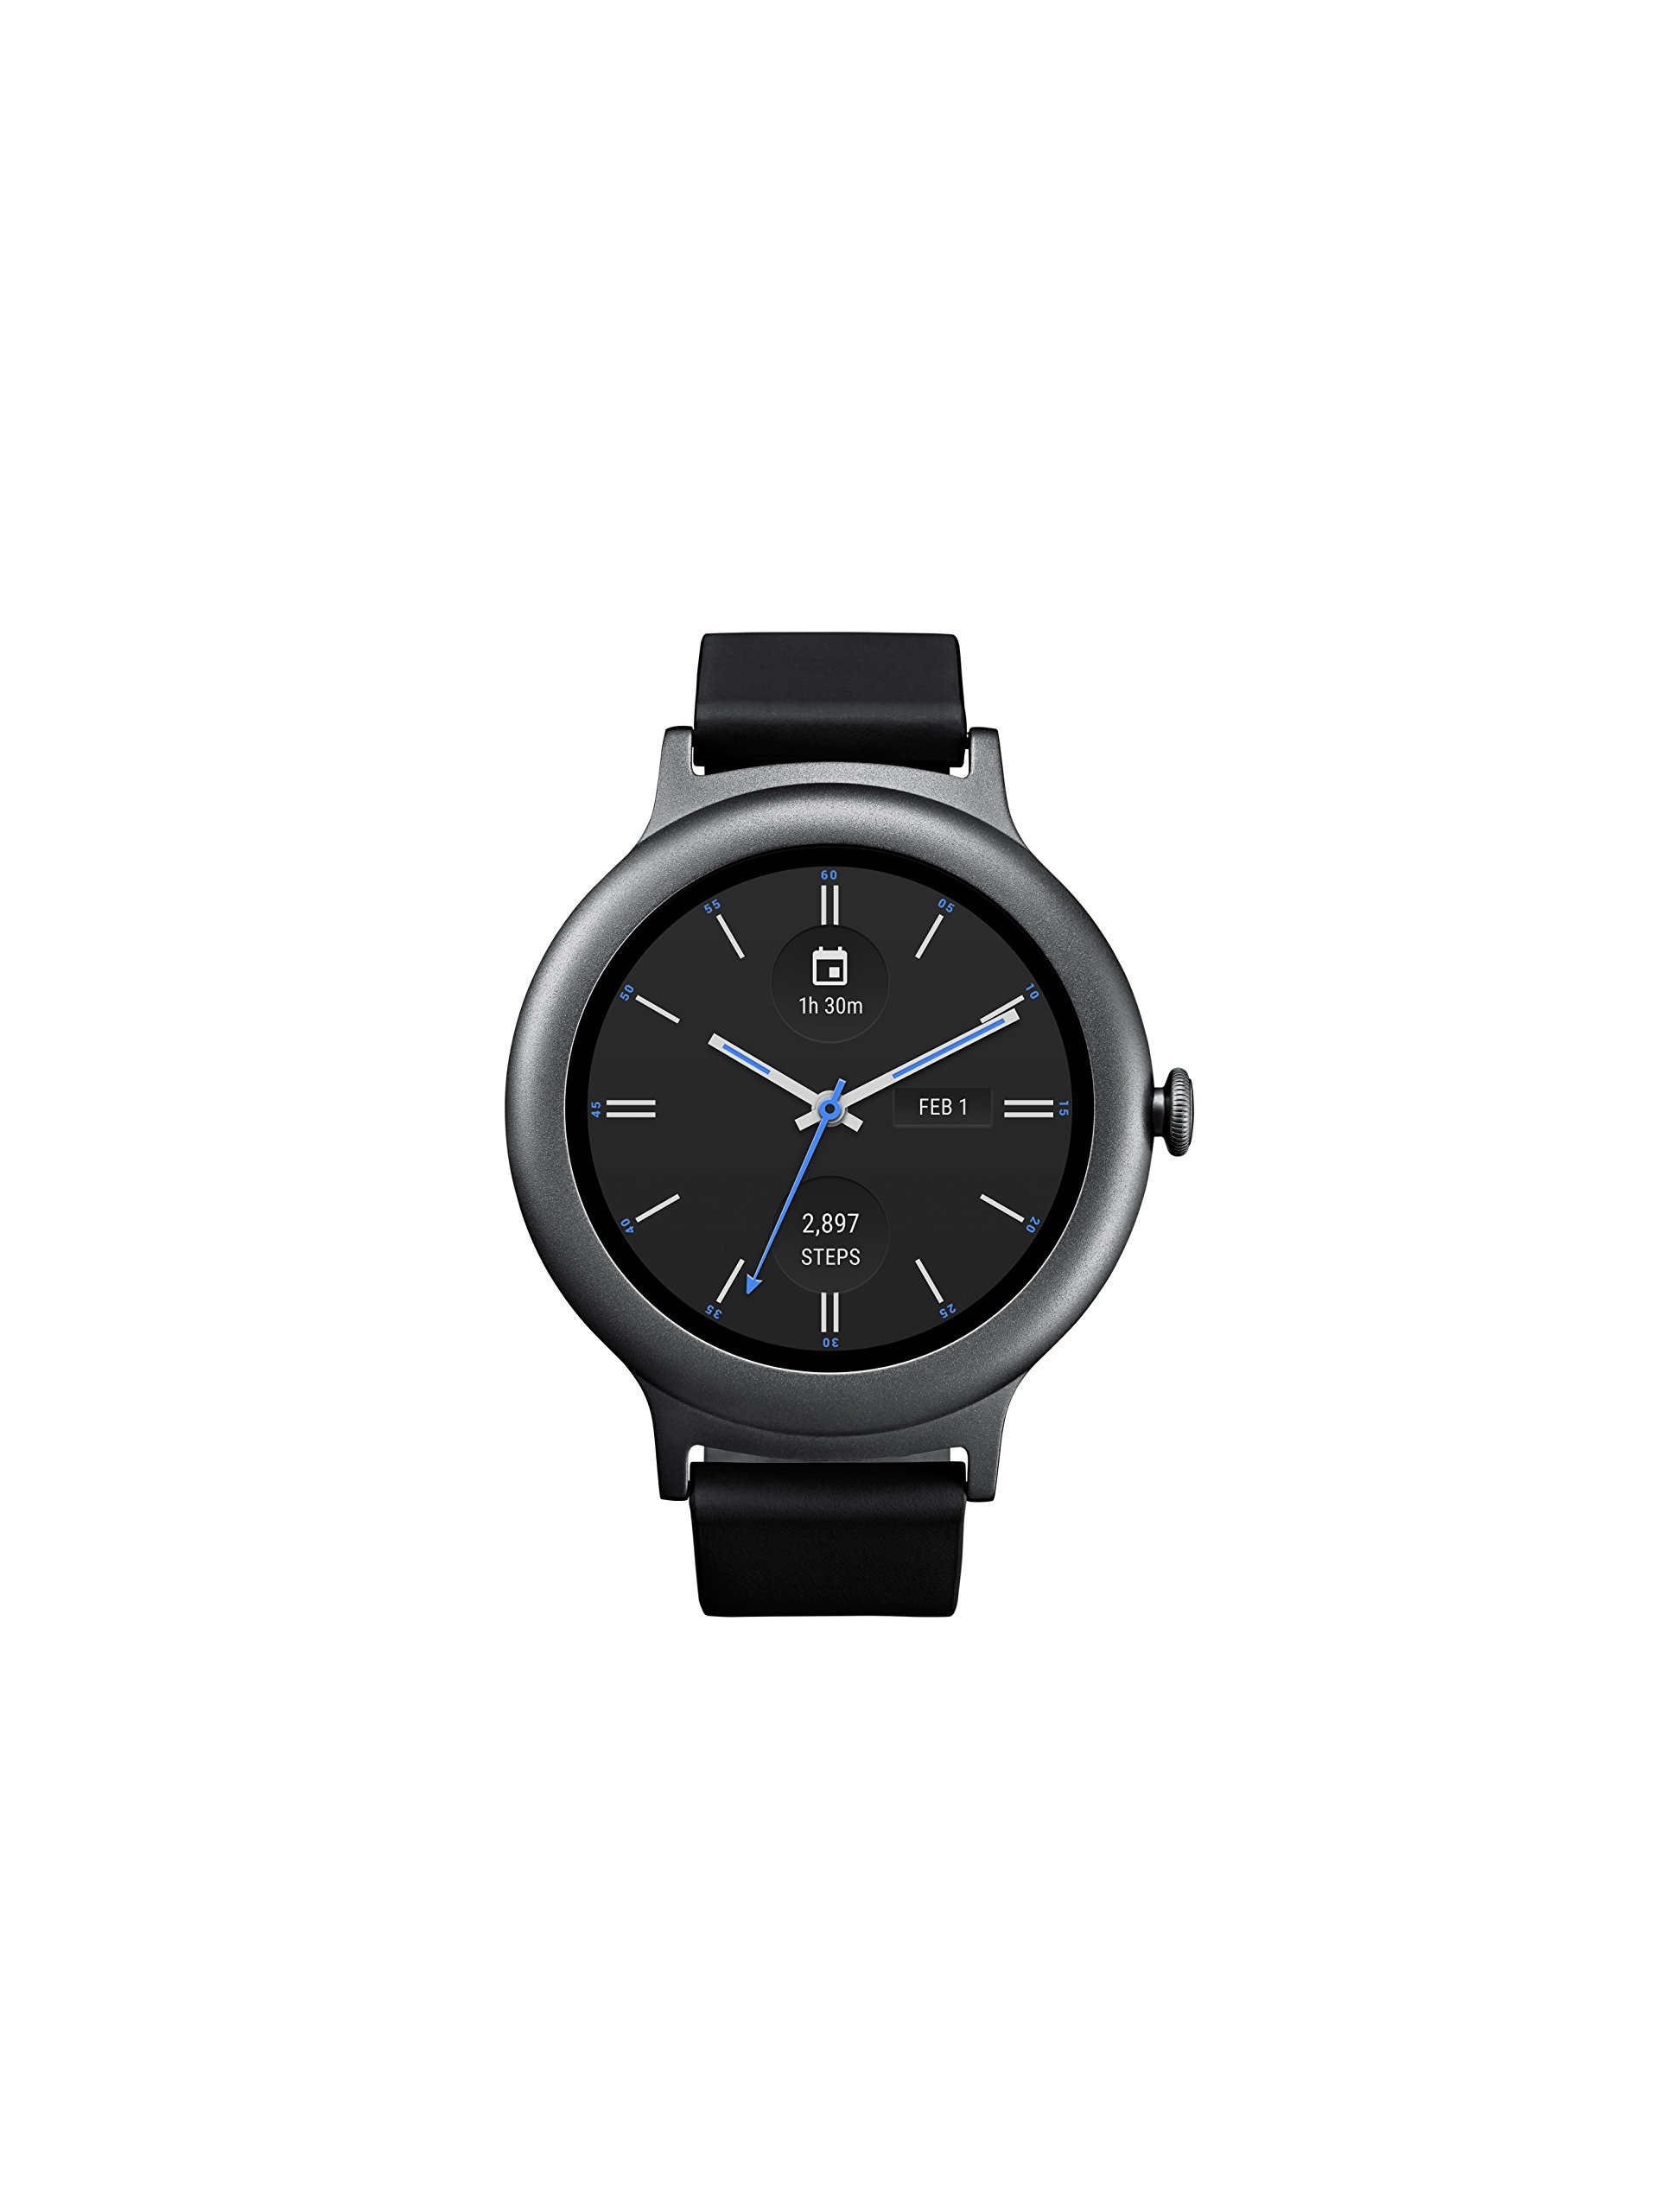 LG Electronics LGW270.AUSATN LG Watch Style Smartwatch with Android Wear 2.0 - Titanium - US Version by LG Watch Style